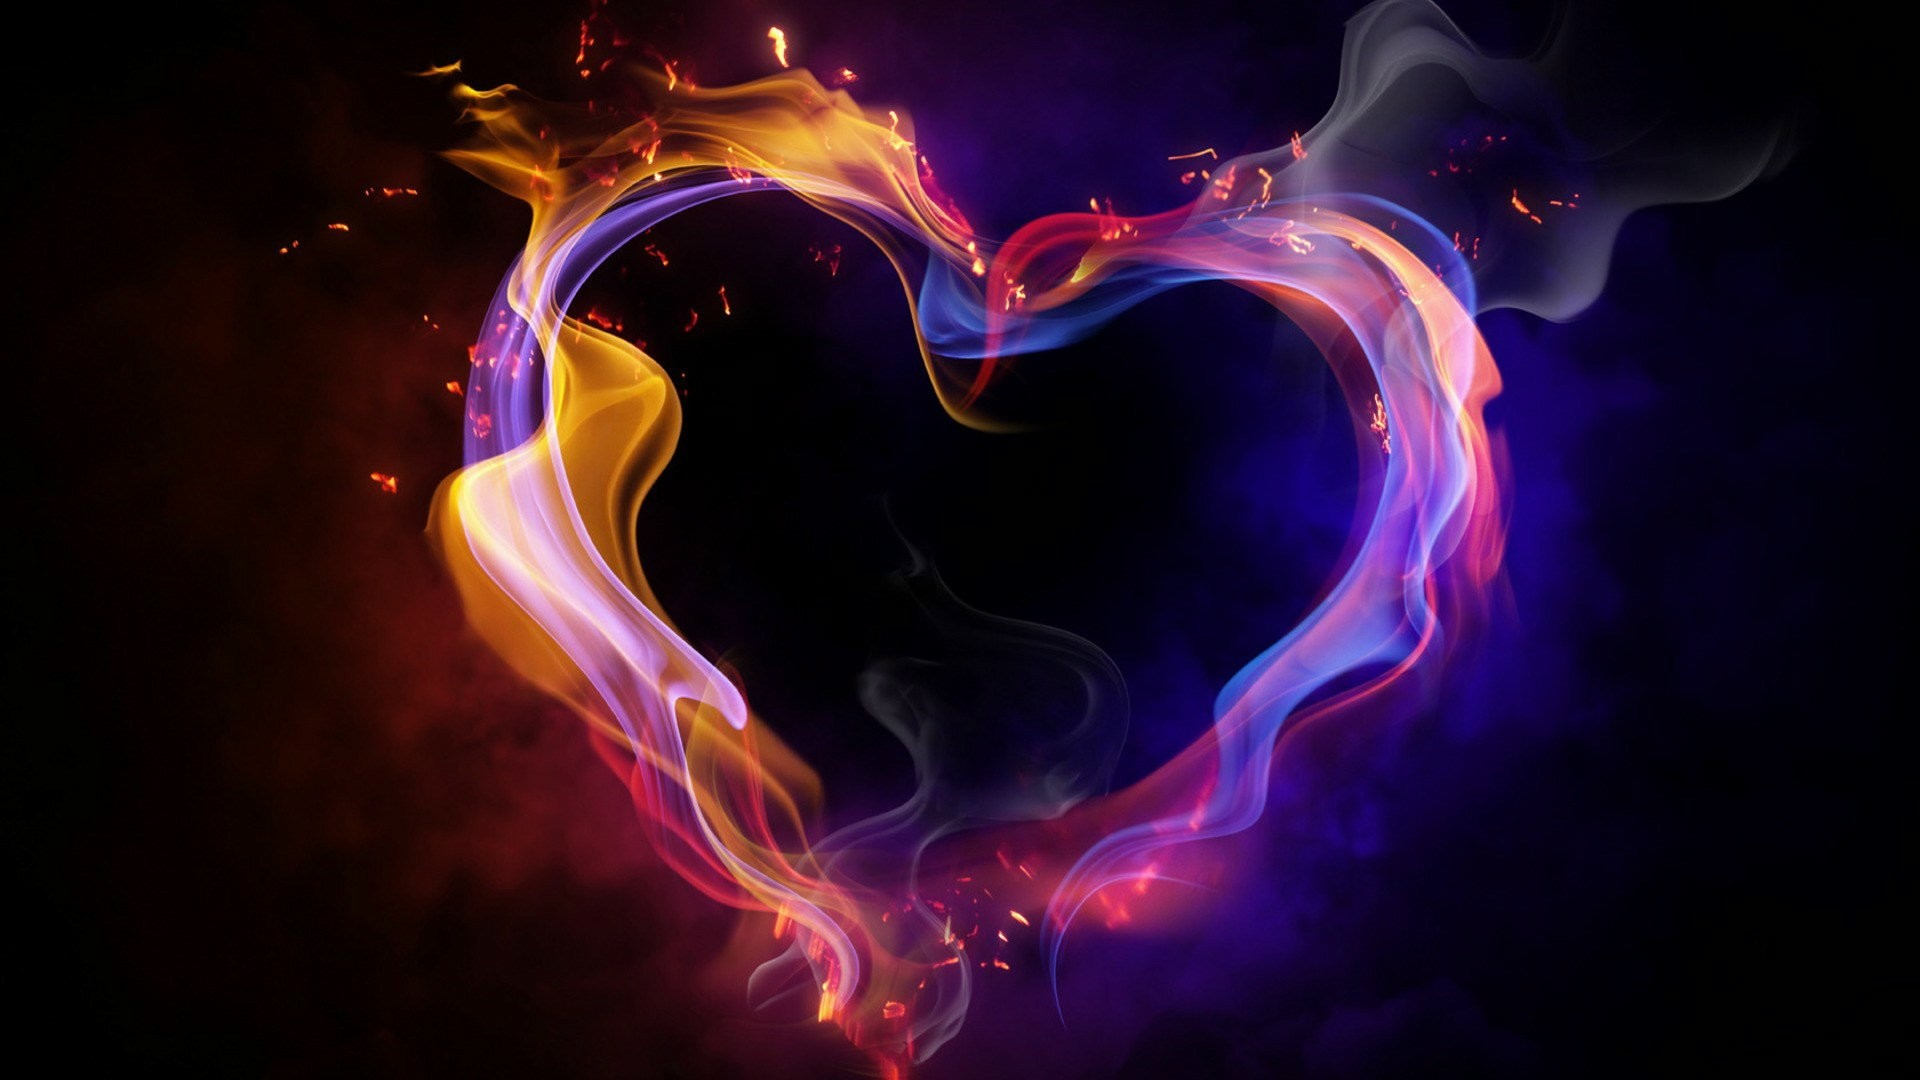 Hd Cool Color Abstract Heart Desktop Wallpapers Backgrounds